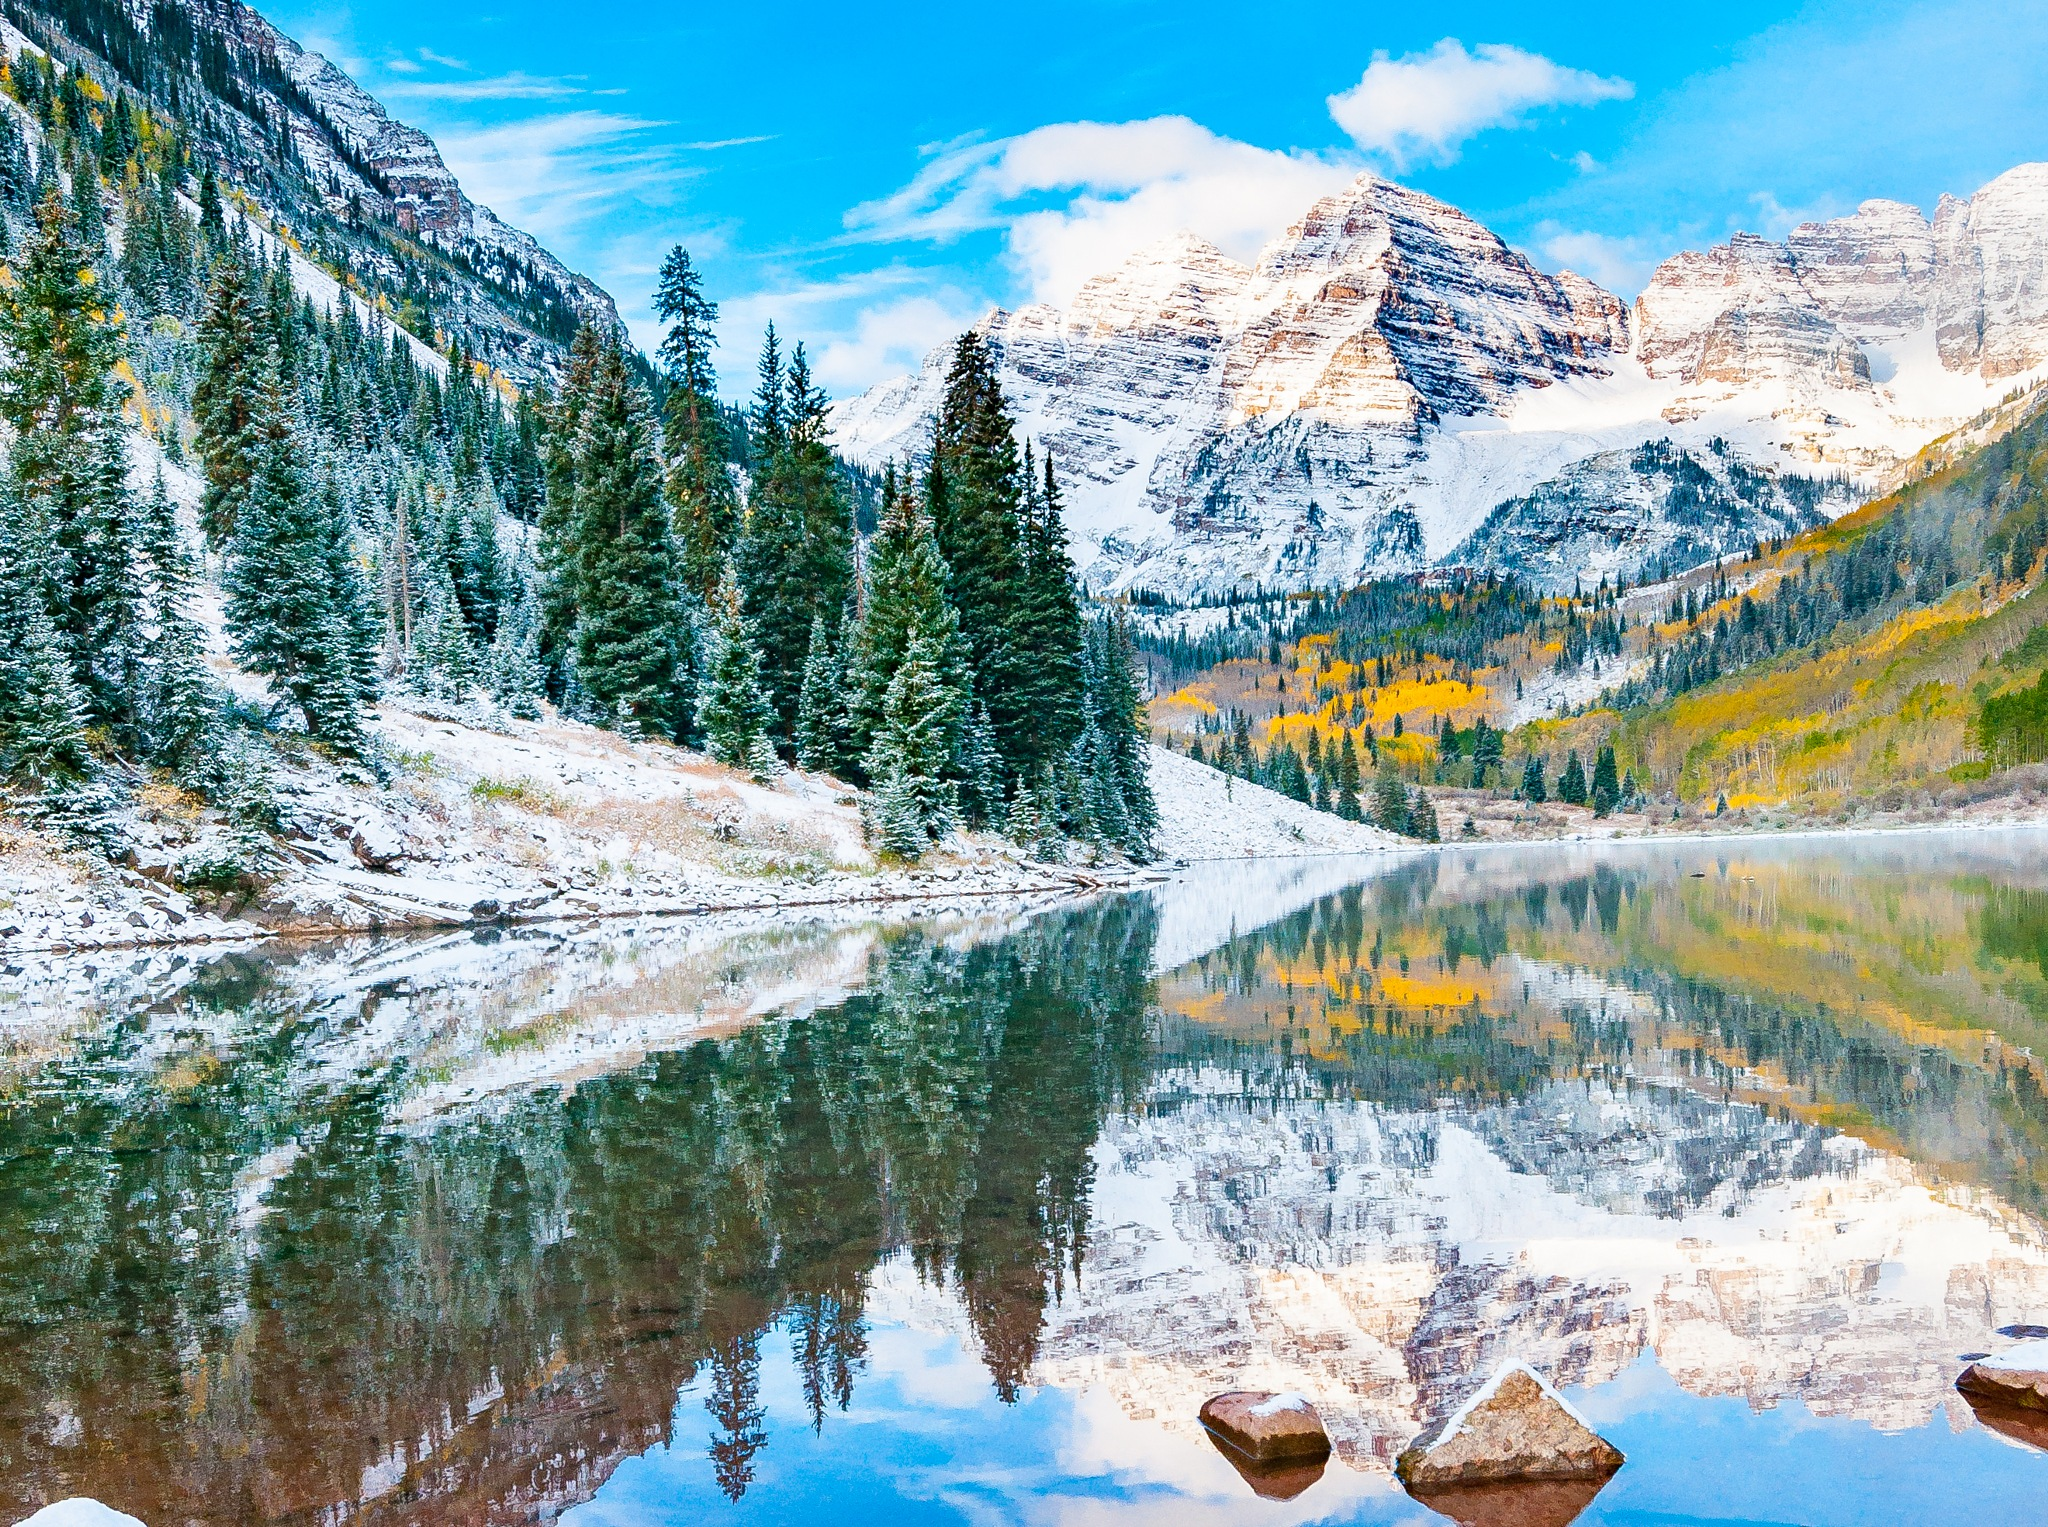 First Snow by Curt Wells